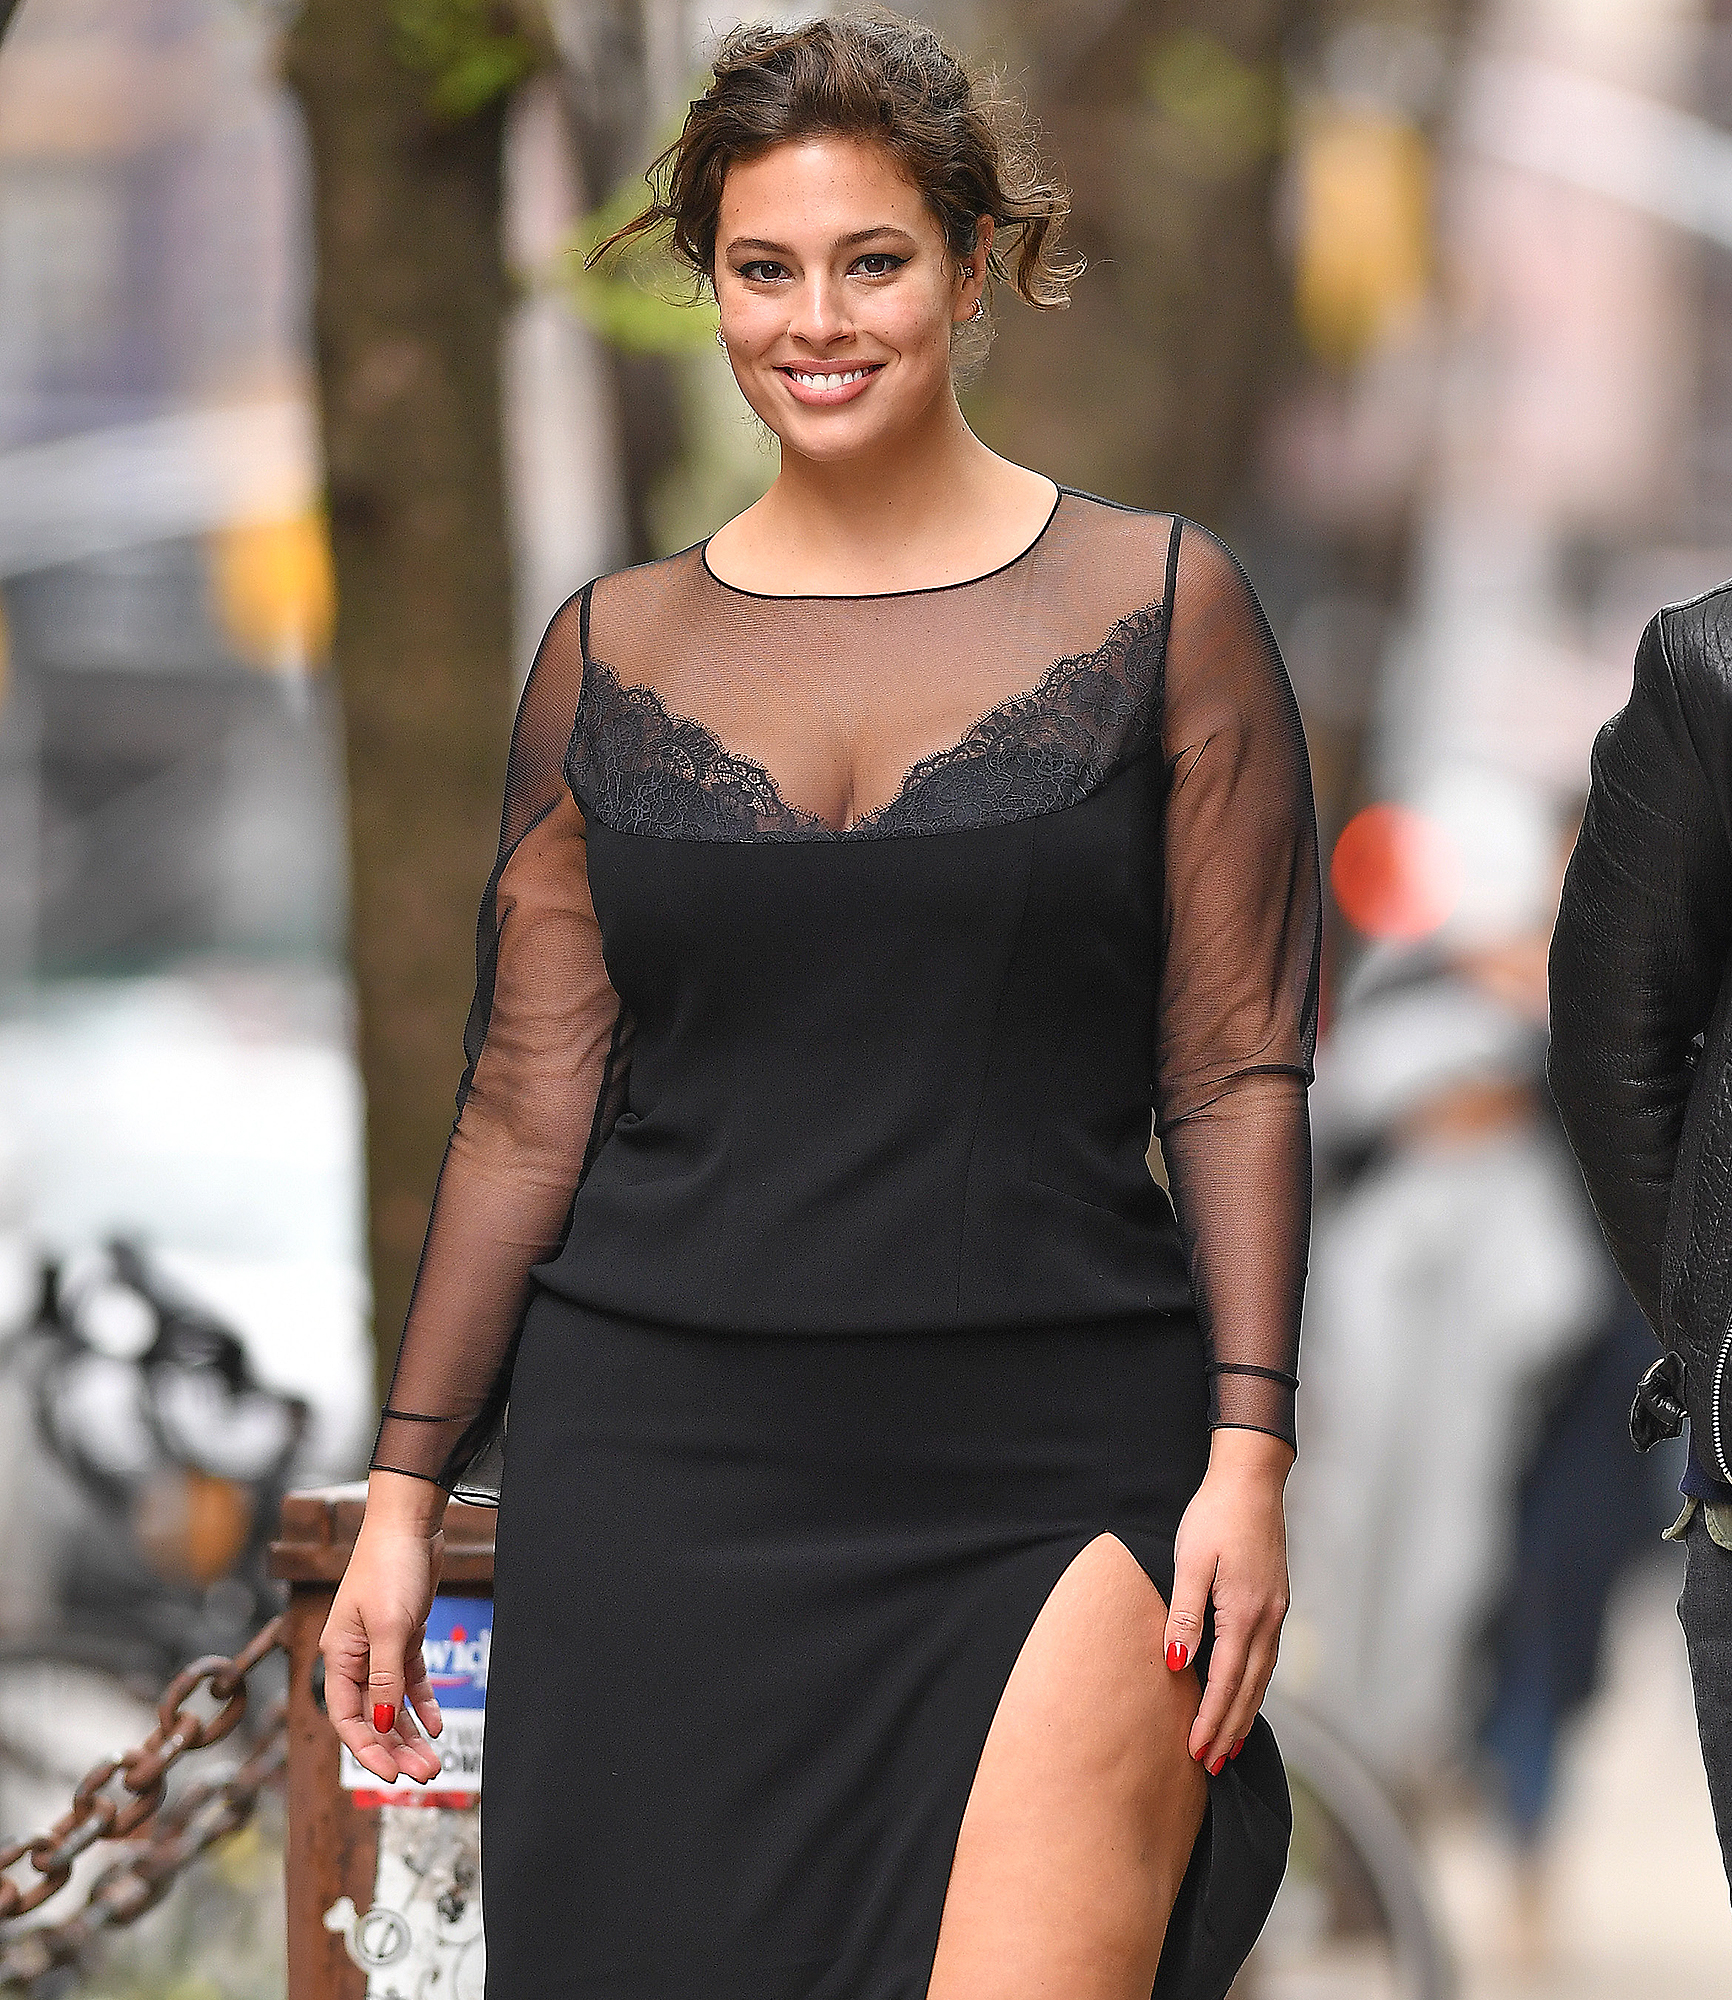 Ashley Graham seen wearing a black lace dress for a Harper's Bazaar UK photo shoot in New York City